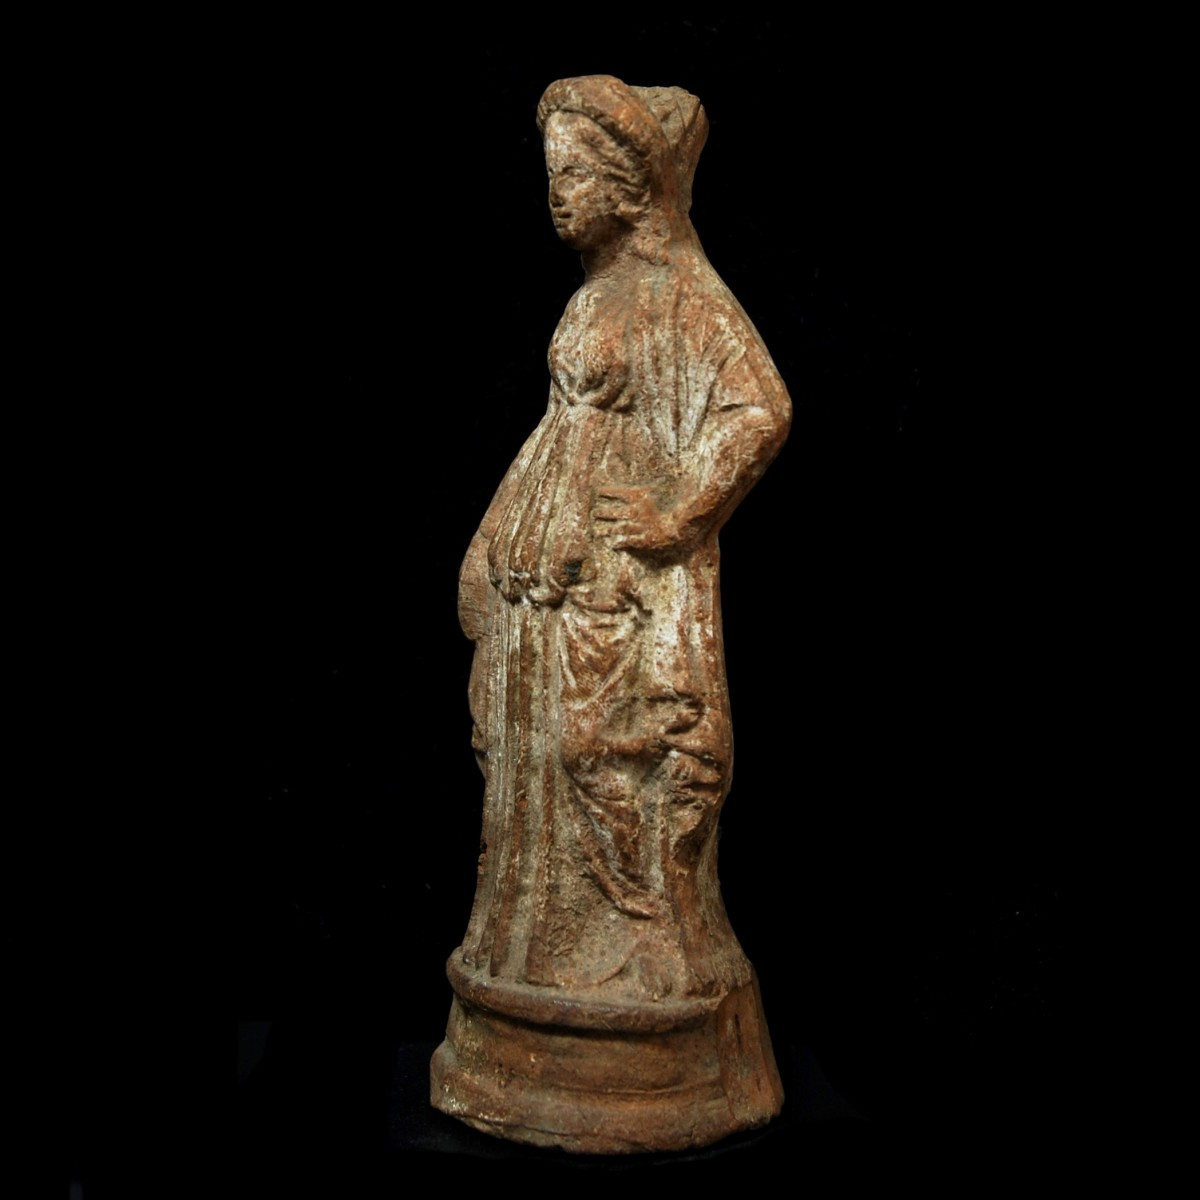 Cypriot terracotta statue of a woman half left